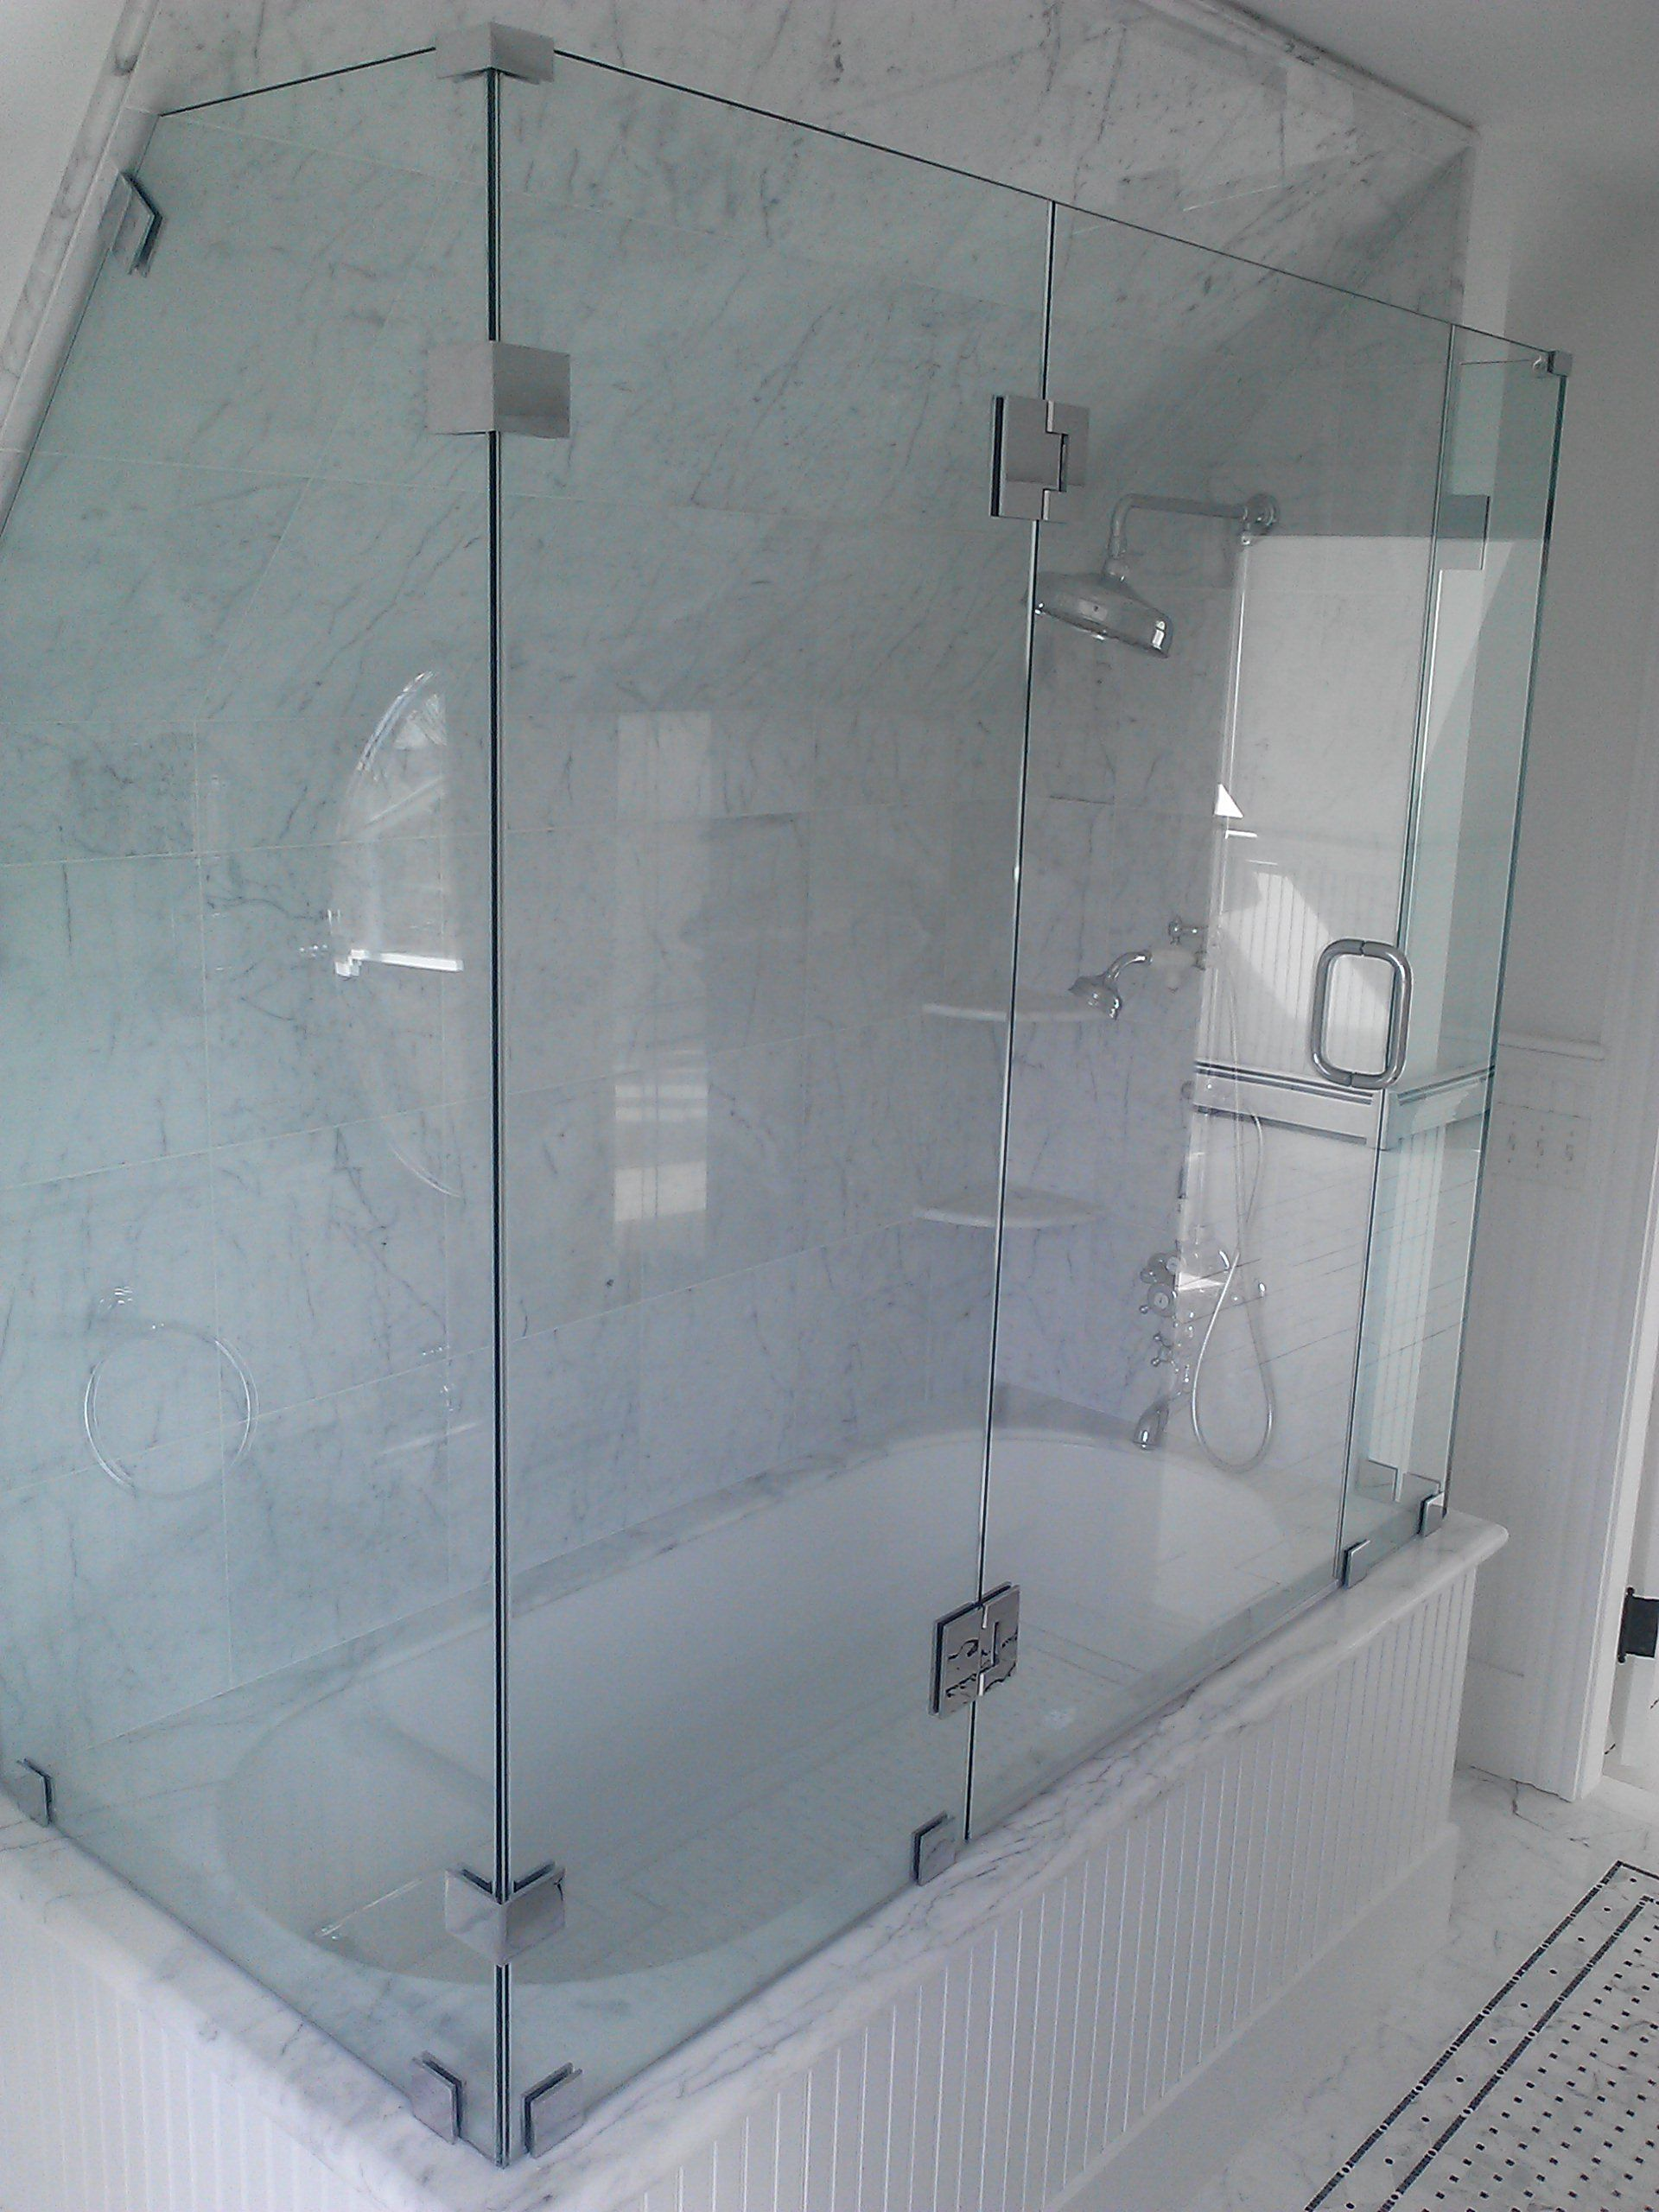 I Would Love A Big Glass Shower Like This Someday My Only Worry